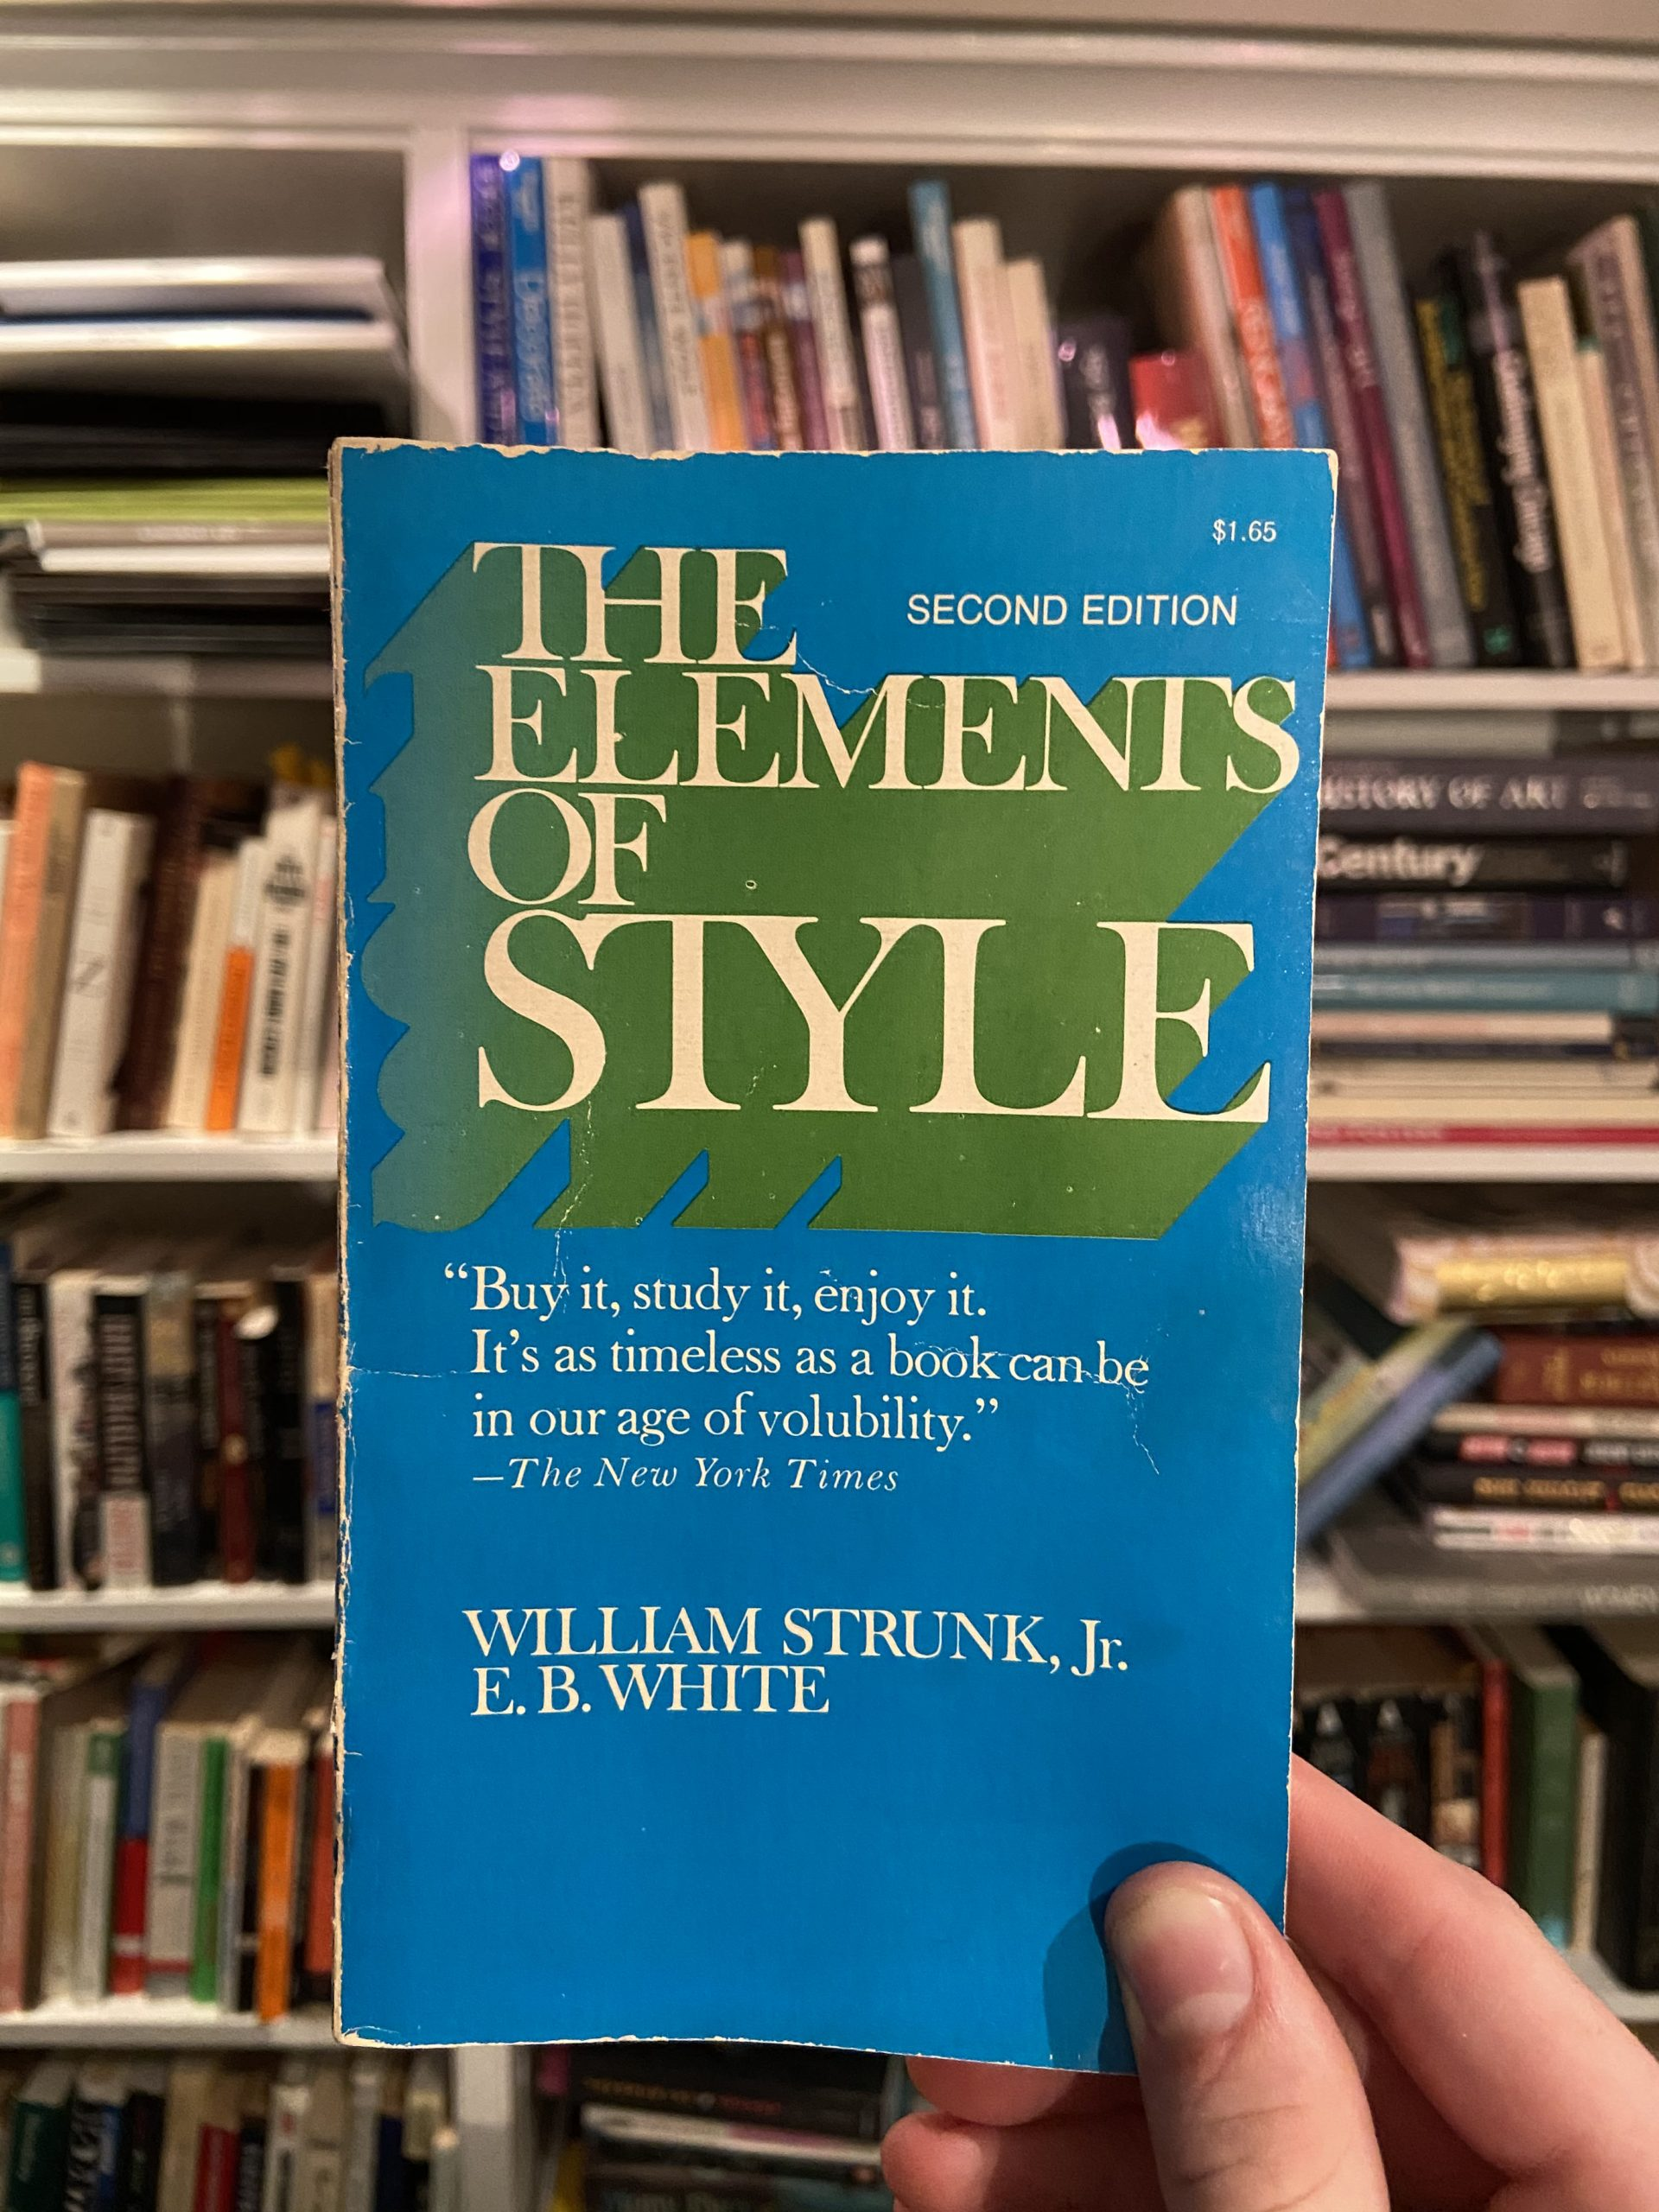 Personal, worn copy of William Shrunk / EB White Elements of Style